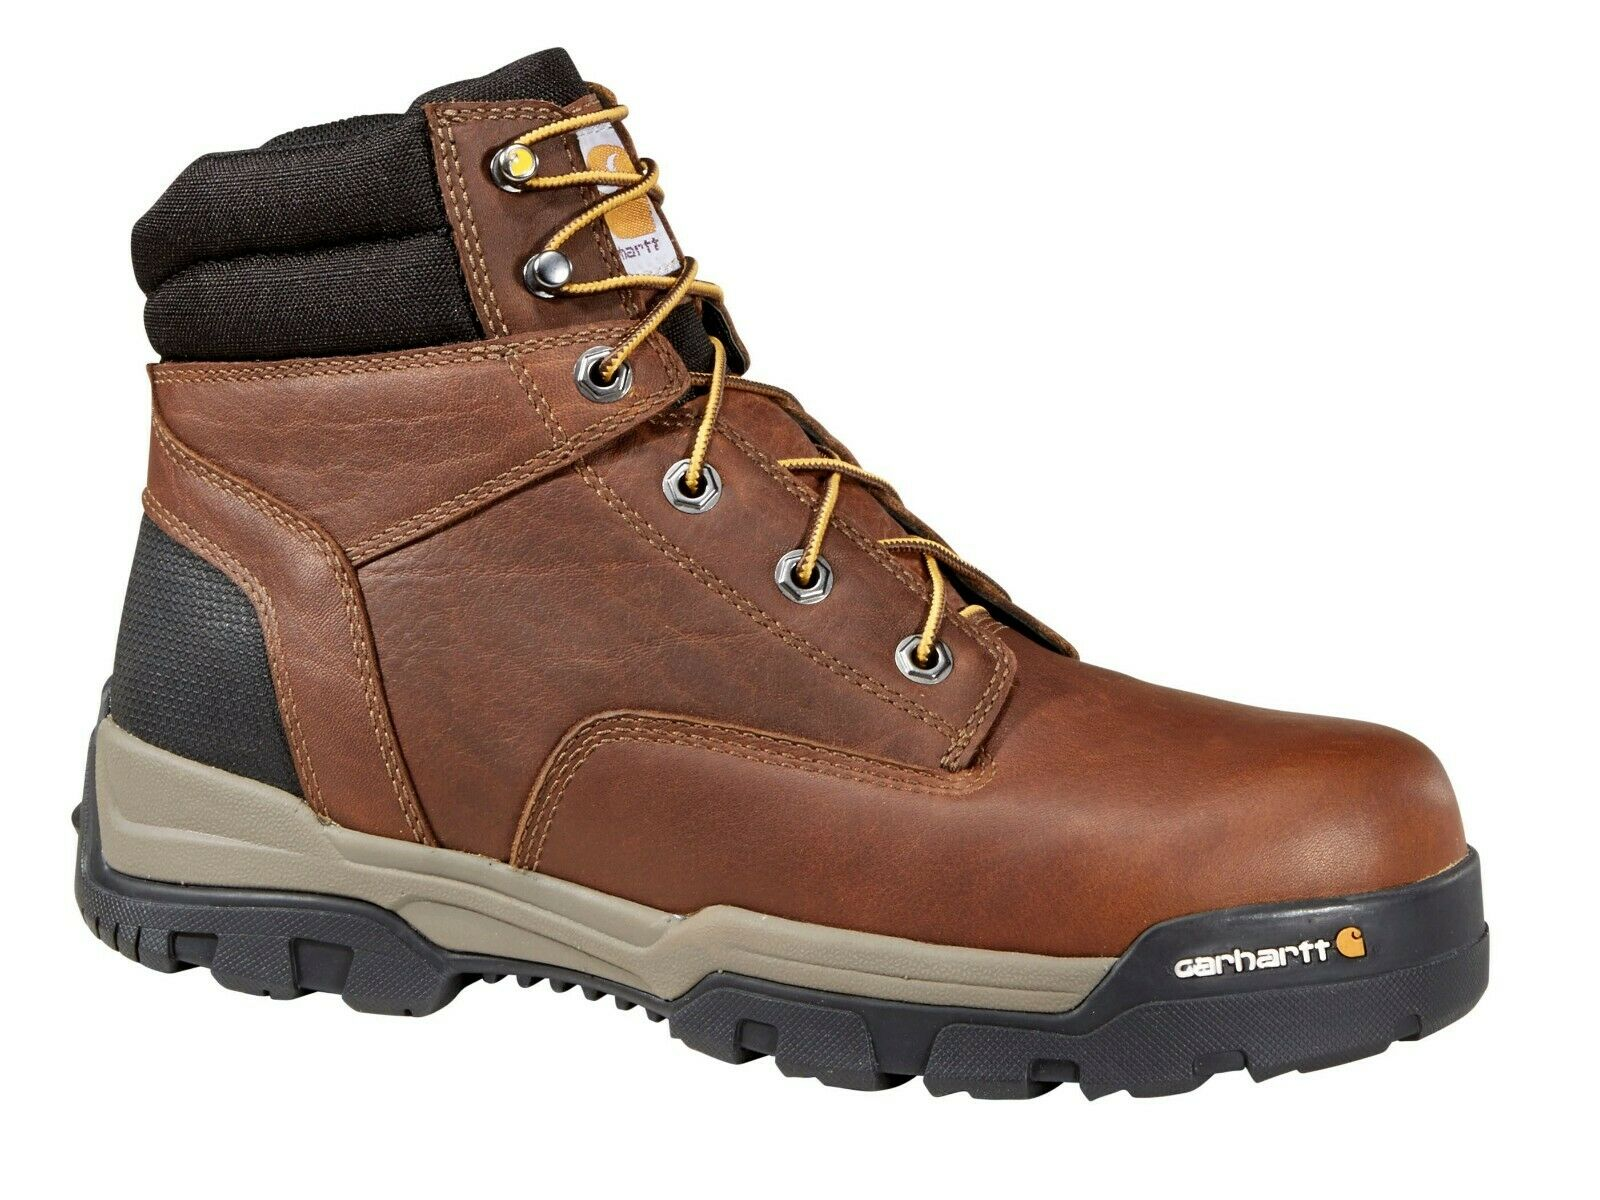 Carhartt CME6354 Uomo Uomo Uomo Ground Force 6  Composite Toe Work stivali Leather scarpe 015b1f